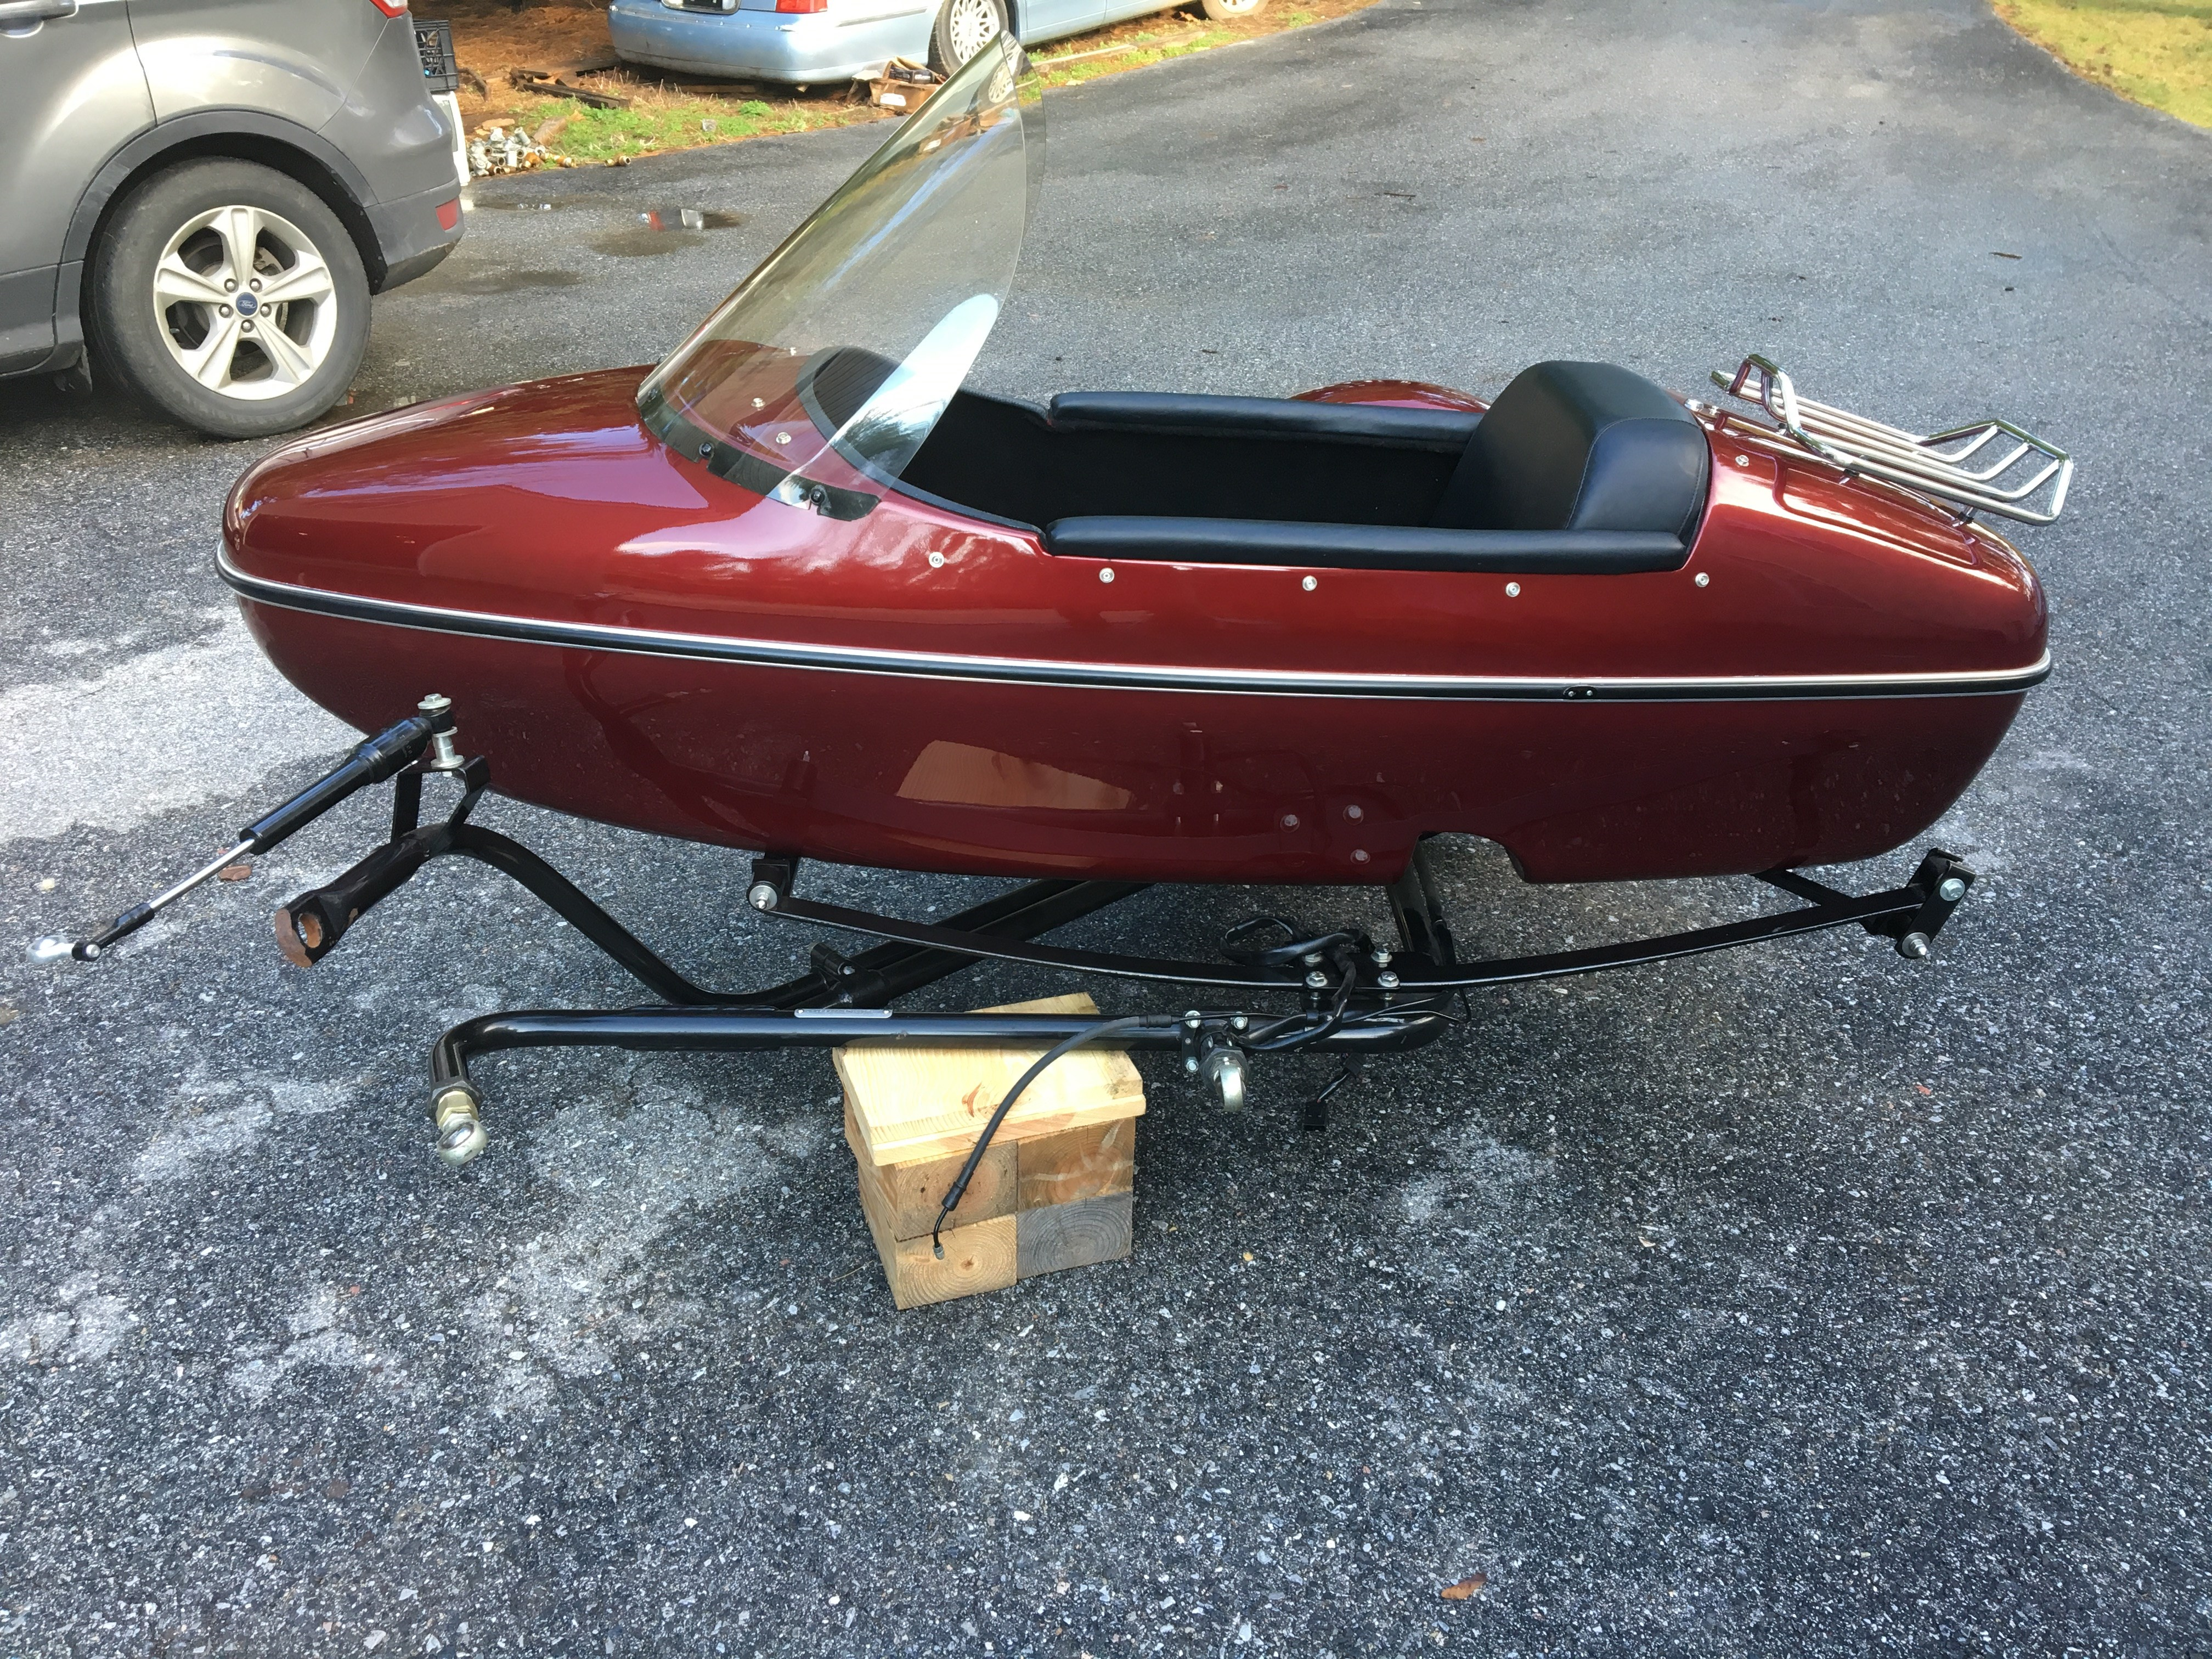 2006 Harley Davidson 174 Tle Sidecar Police Fire Rescue Dk